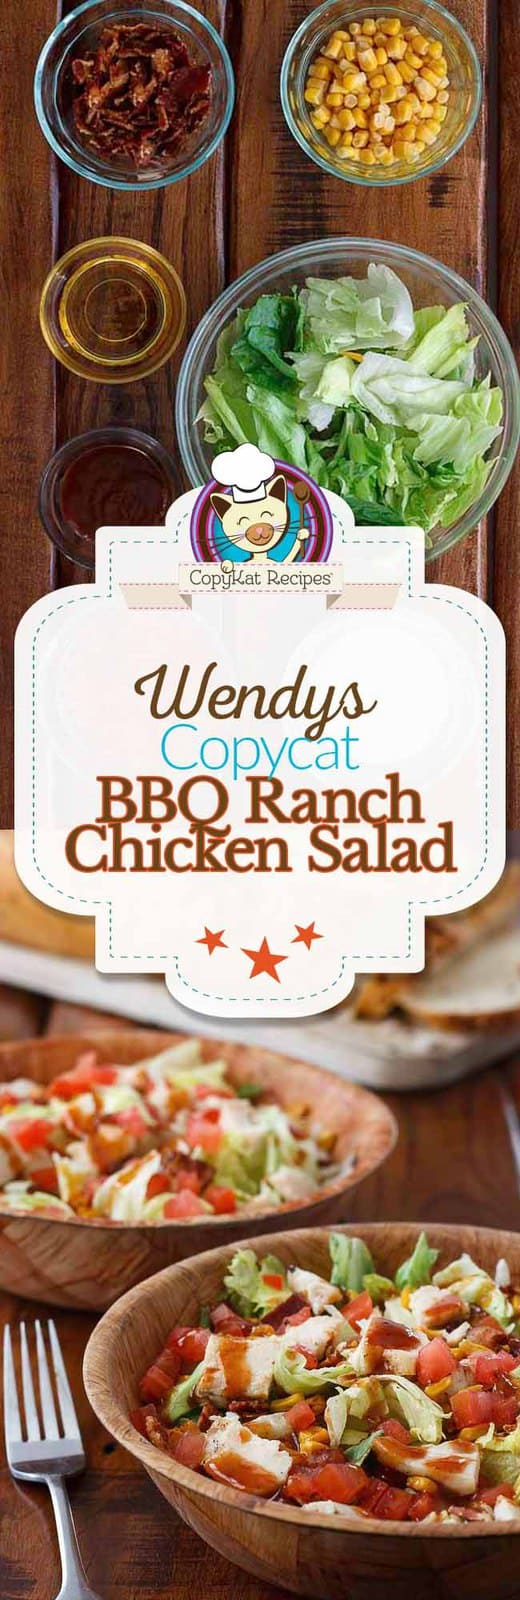 Make a meal out of a salad with this copycat recipe for Wendy's BBQ Ranch Chicken Salad.#chicken #salad #copycat #copycatrecipe